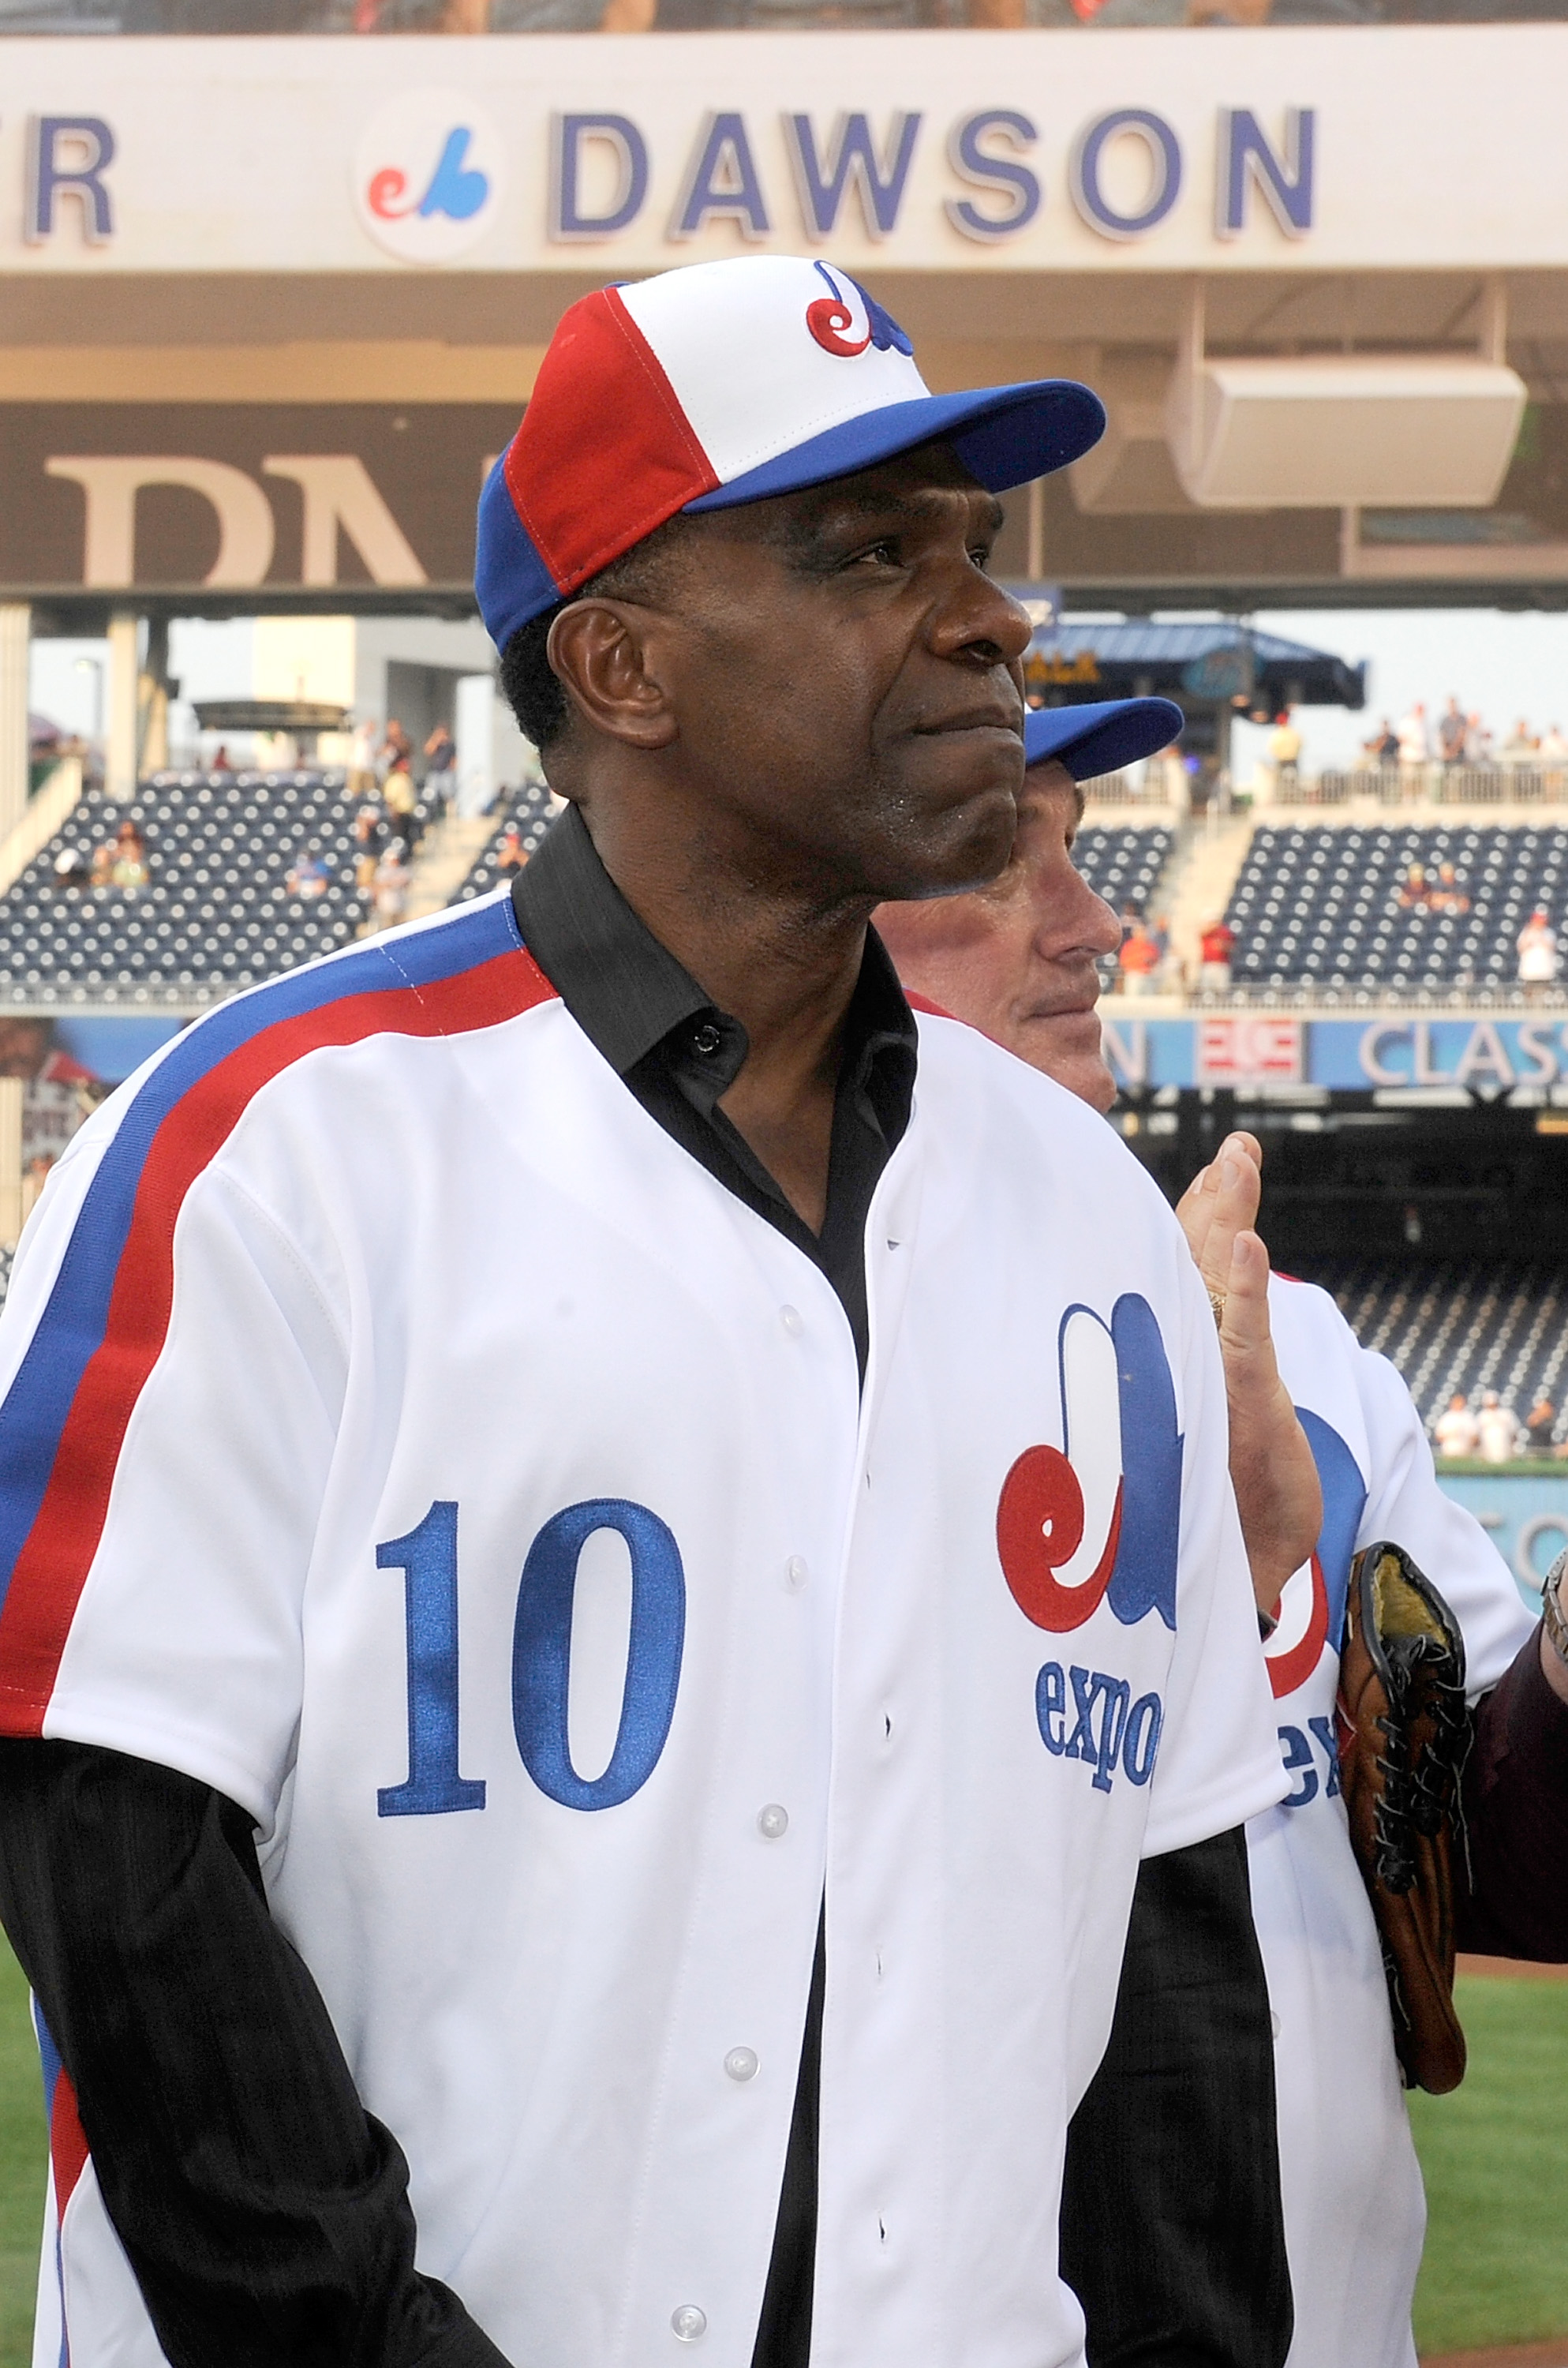 WASHINGTON - AUGUST 10:  Andre Dawson #10 watches as his name is added to the Nationals ring of fame before the game between the Washington Nationals and the Florida Marlins at Nationals Park on August 10, 2010 in Washington, DC.  (Photo by Greg Fiume/Get